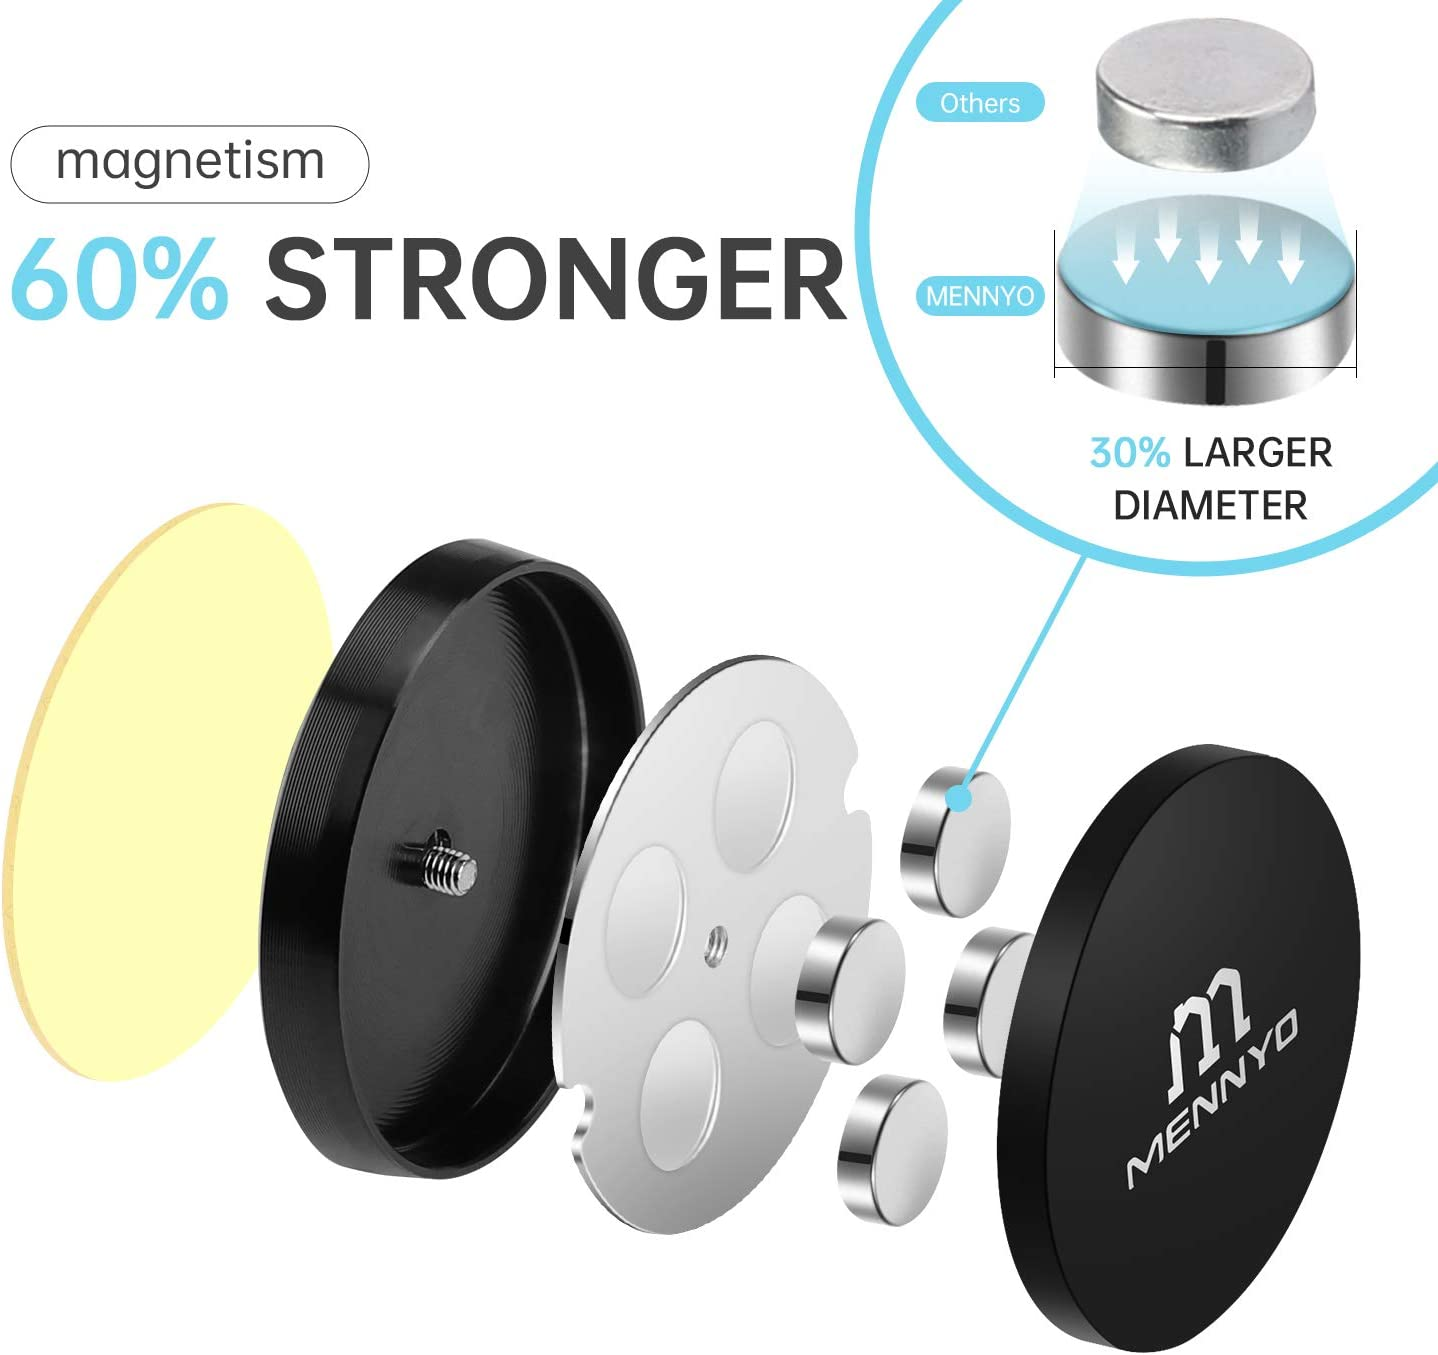 2 Pack Universal Flat Stick On Magnet Phone Holder Car Mounts with 2 Metal Plates for Cell Phones Mini Tablets Magnetic Car Mount